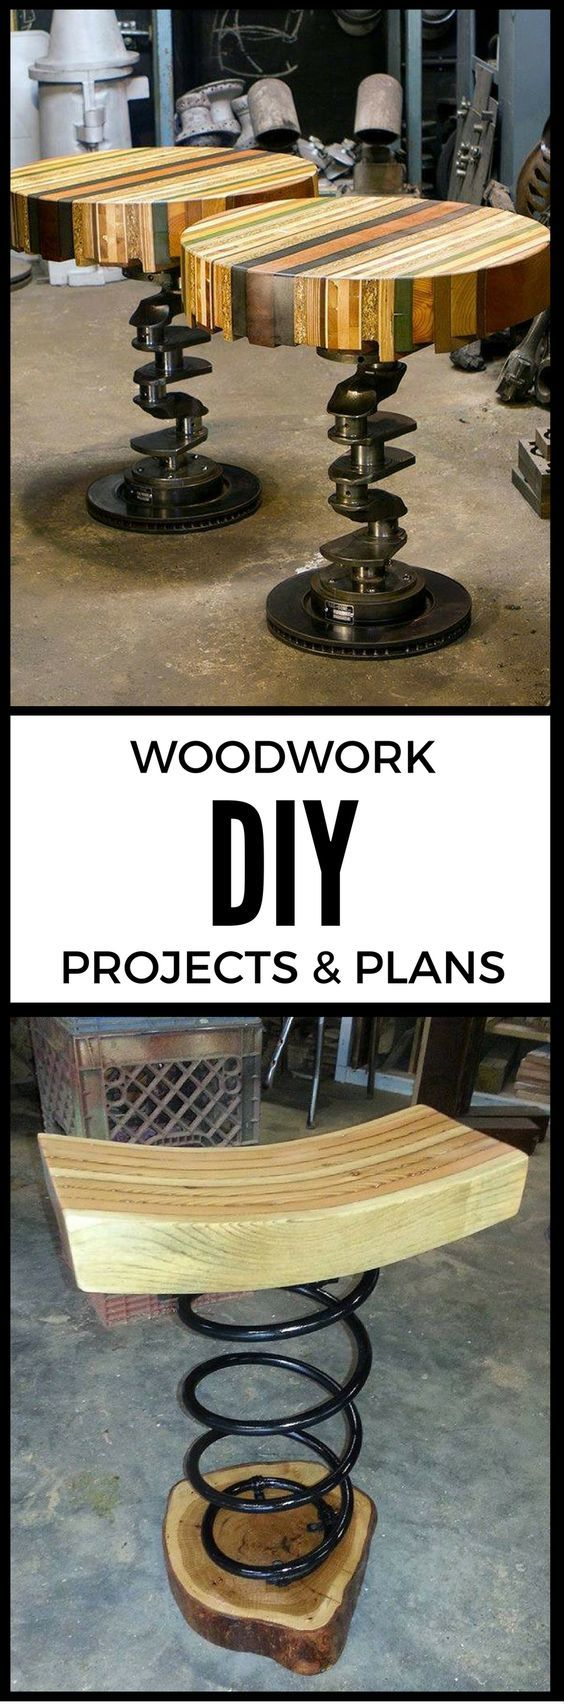 16,000 DIY Woodworking Projects -Do It Yourself DIY Garage Makeover Ideas Include Storage, Organization, Shelves, and Project Plans for Cool New Garage Decor @aegisgears